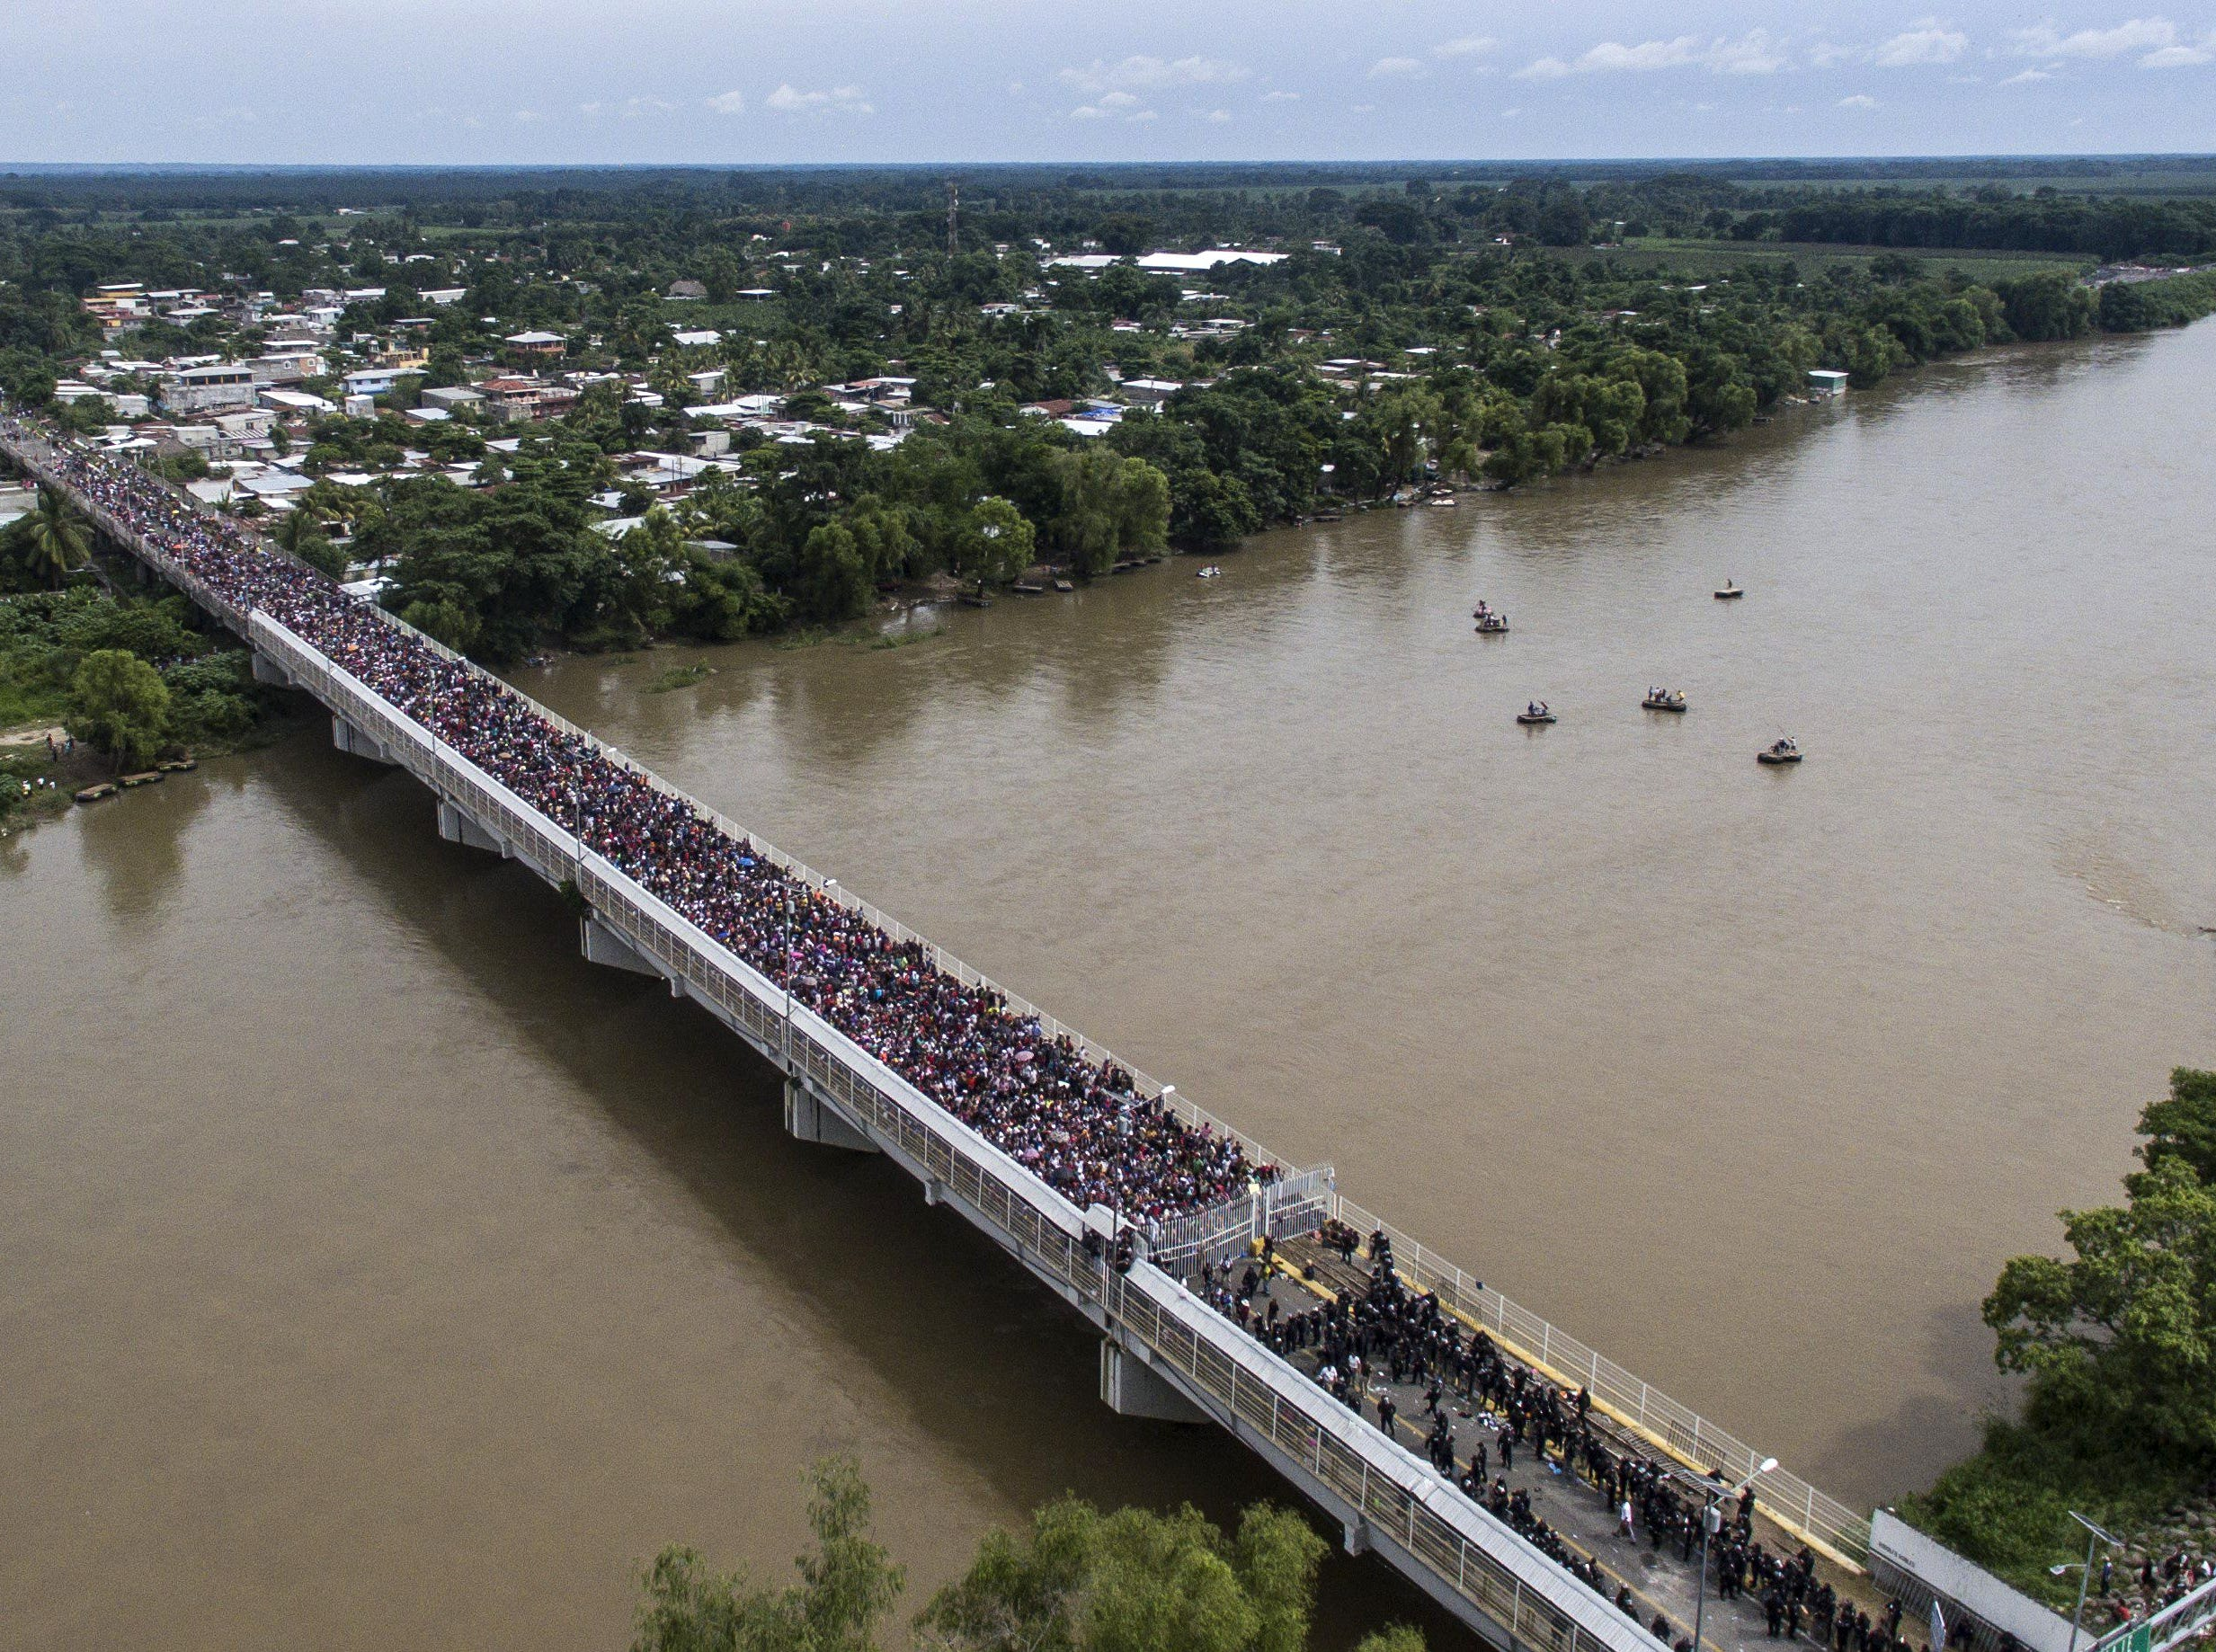 Aerial view of a Honduran migrant caravan heading to the US, as it is stopped at a border barrier on the Guatemala-Mexico international bridge in Ciudad Hidalgo, Mexico, on Oct. 19, 2018.  Honduran migrants who have made their way through Central America were gathering at Guatemala's northern border with Mexico, despite President Donald Trump's threat to deploy the military to stop them entering the United States.